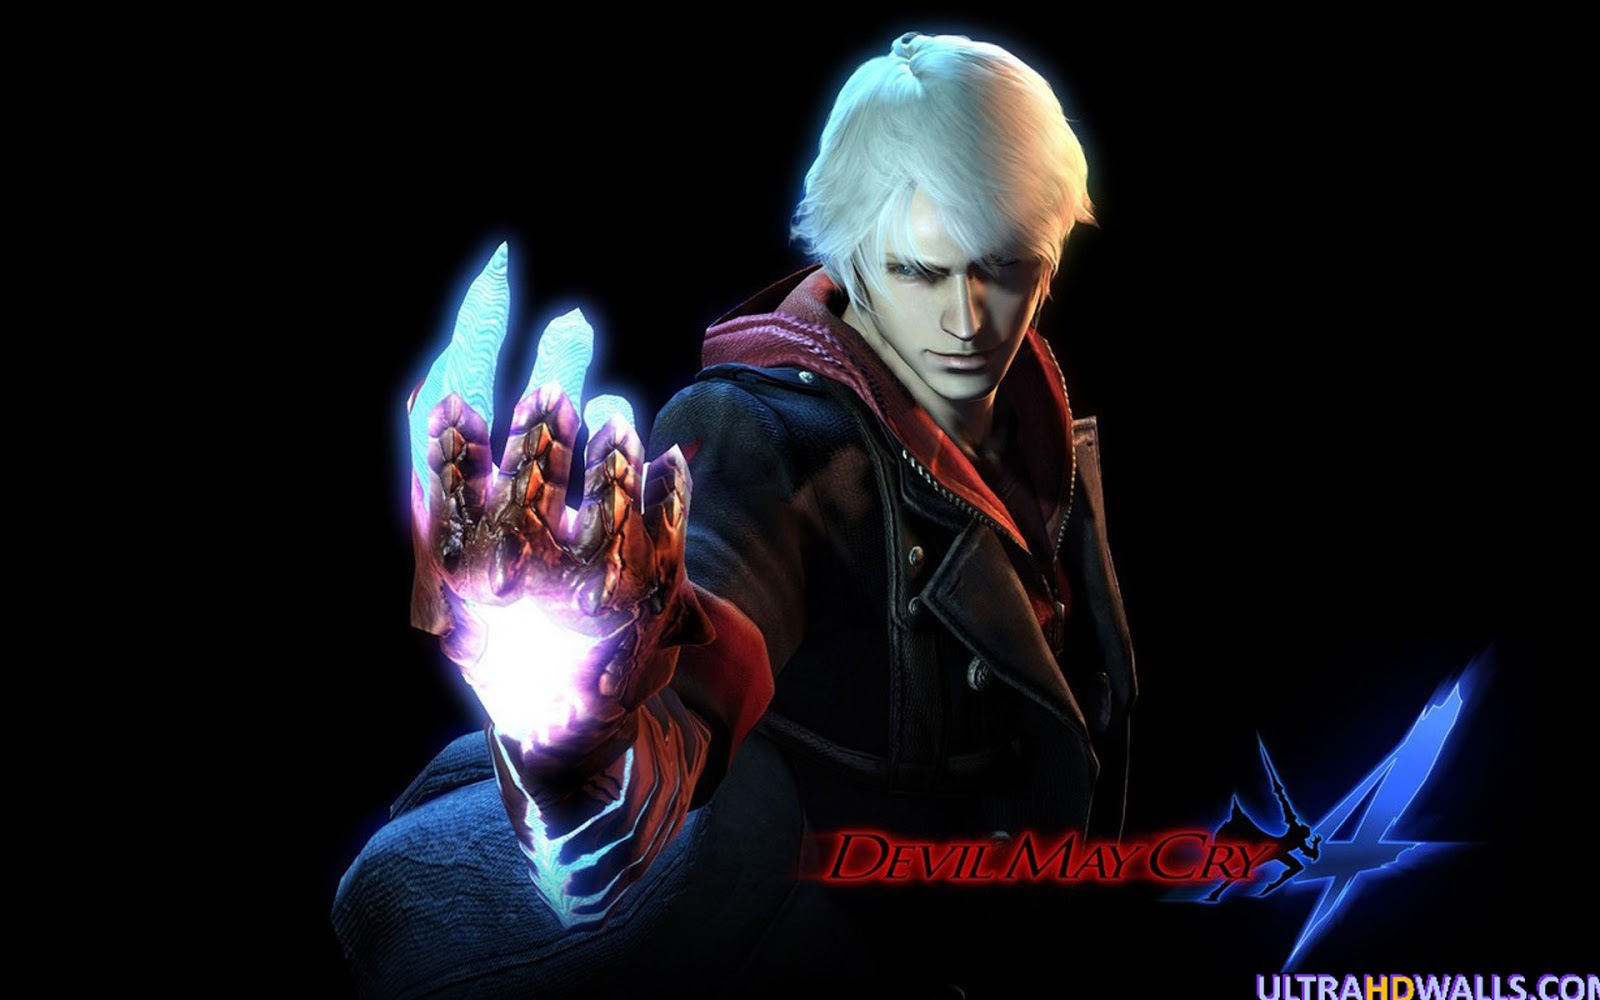 Devil May Cry Game Hd Wallpapers Collection Set 2 Hd